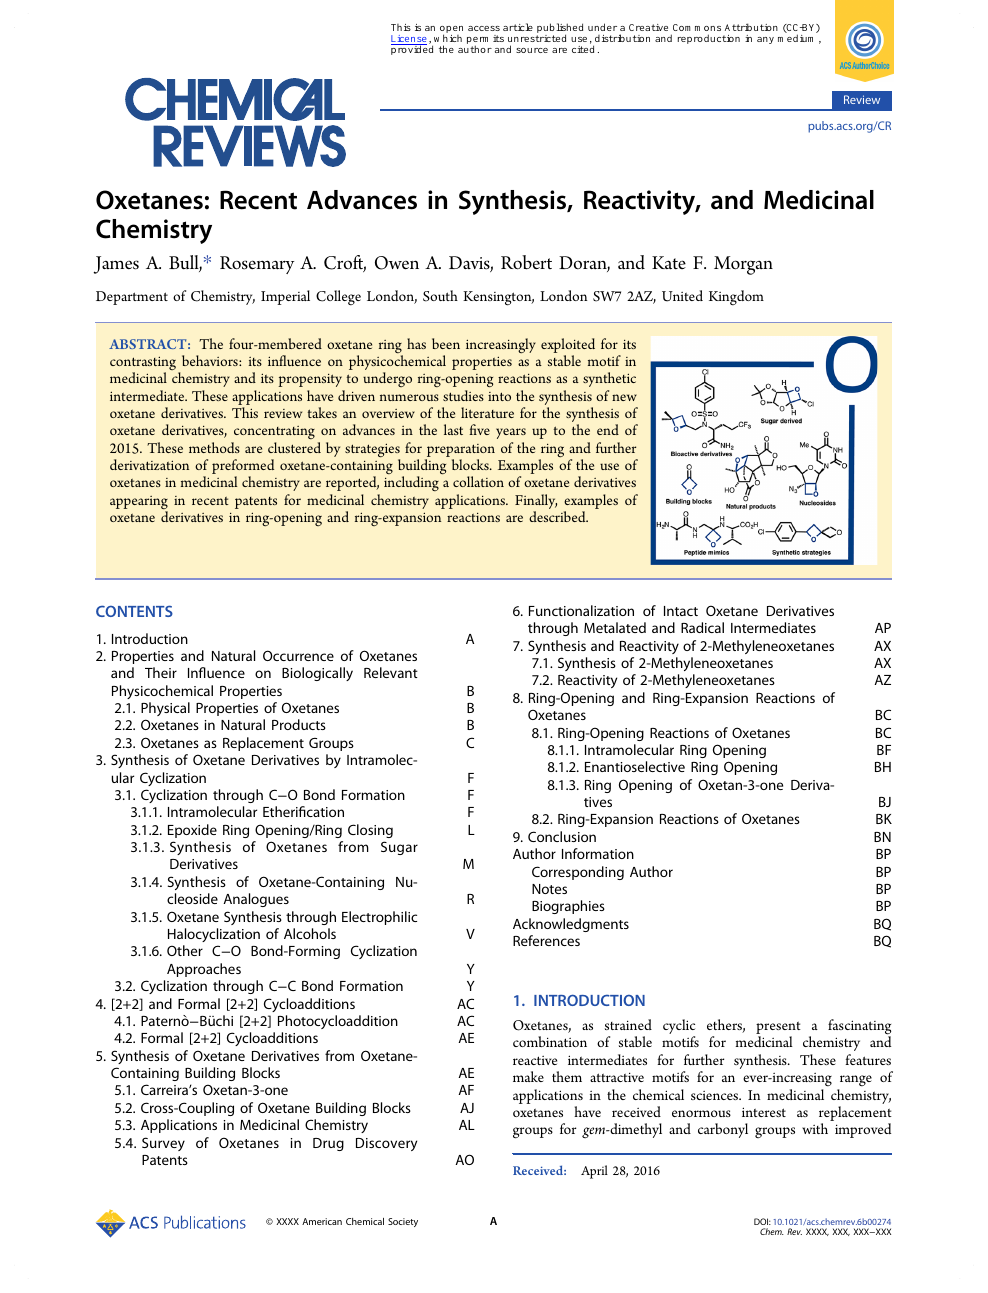 Oxetanes: Recent Advances in Synthesis, Reactivity, and